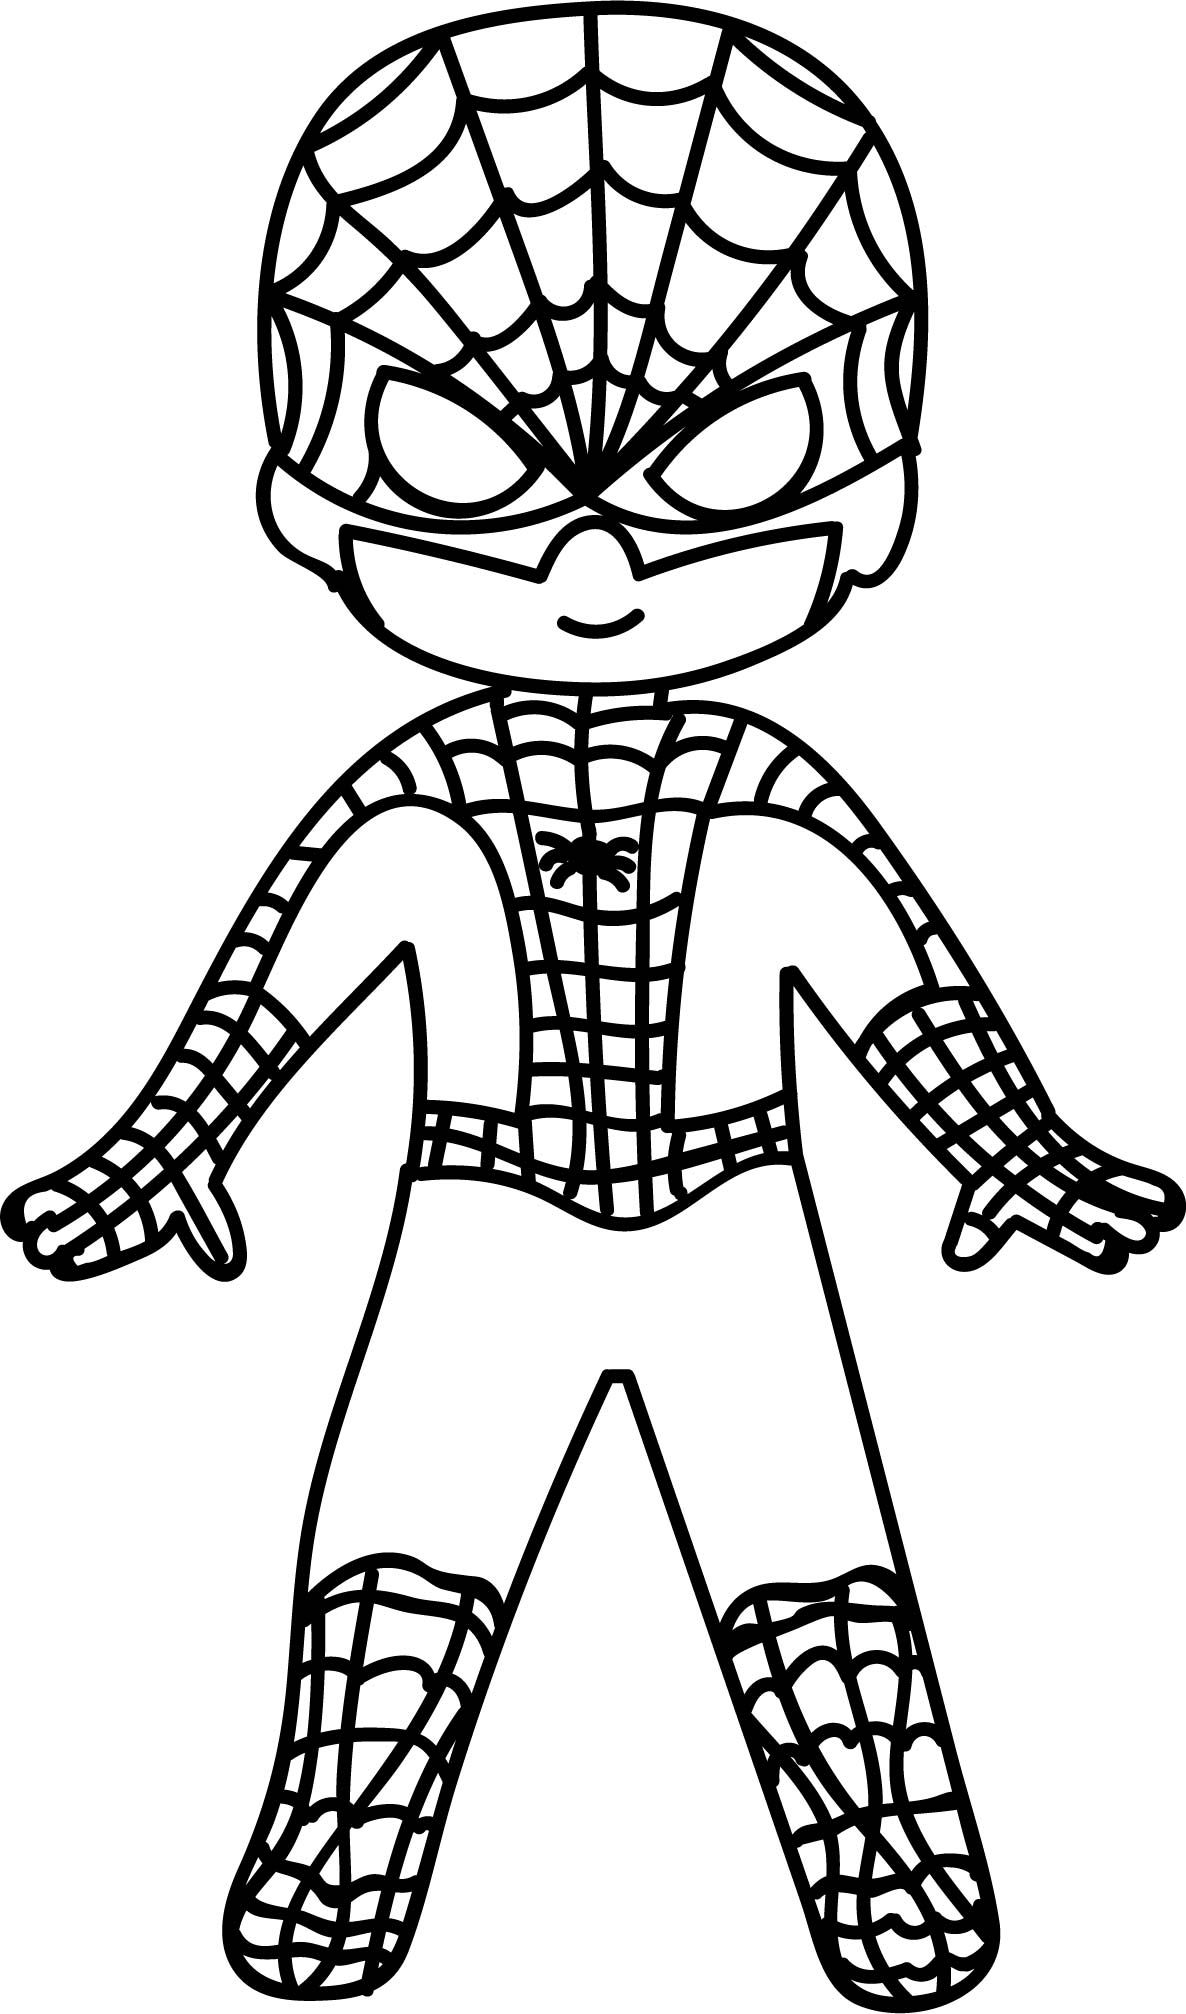 Cool Waiting Cartoon Superhero Spiderman Kid Coloring Page